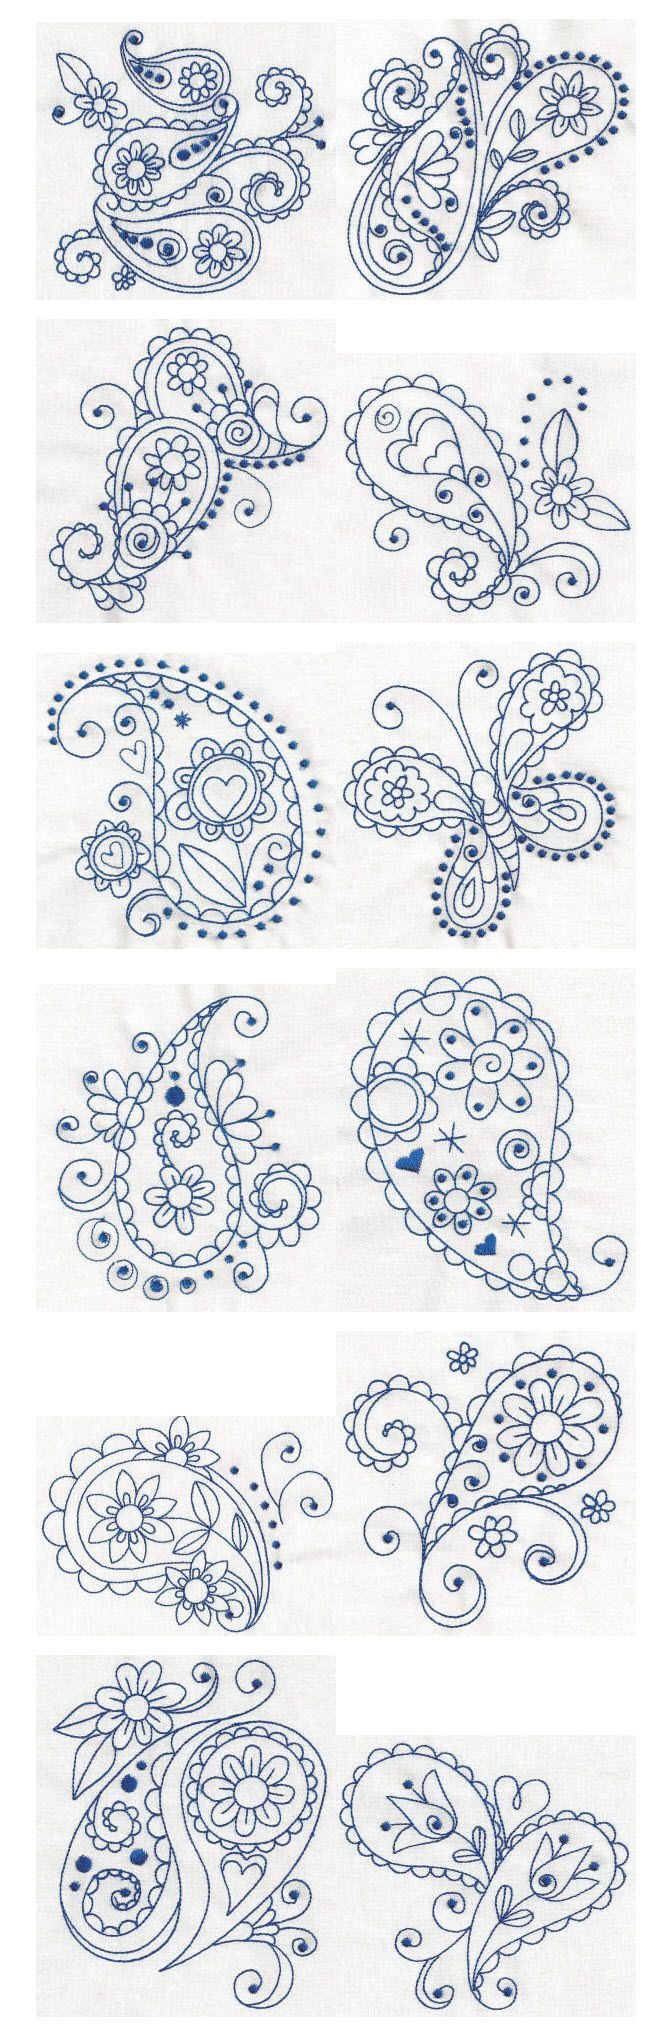 Machine embroidery designs #doodle #paisley